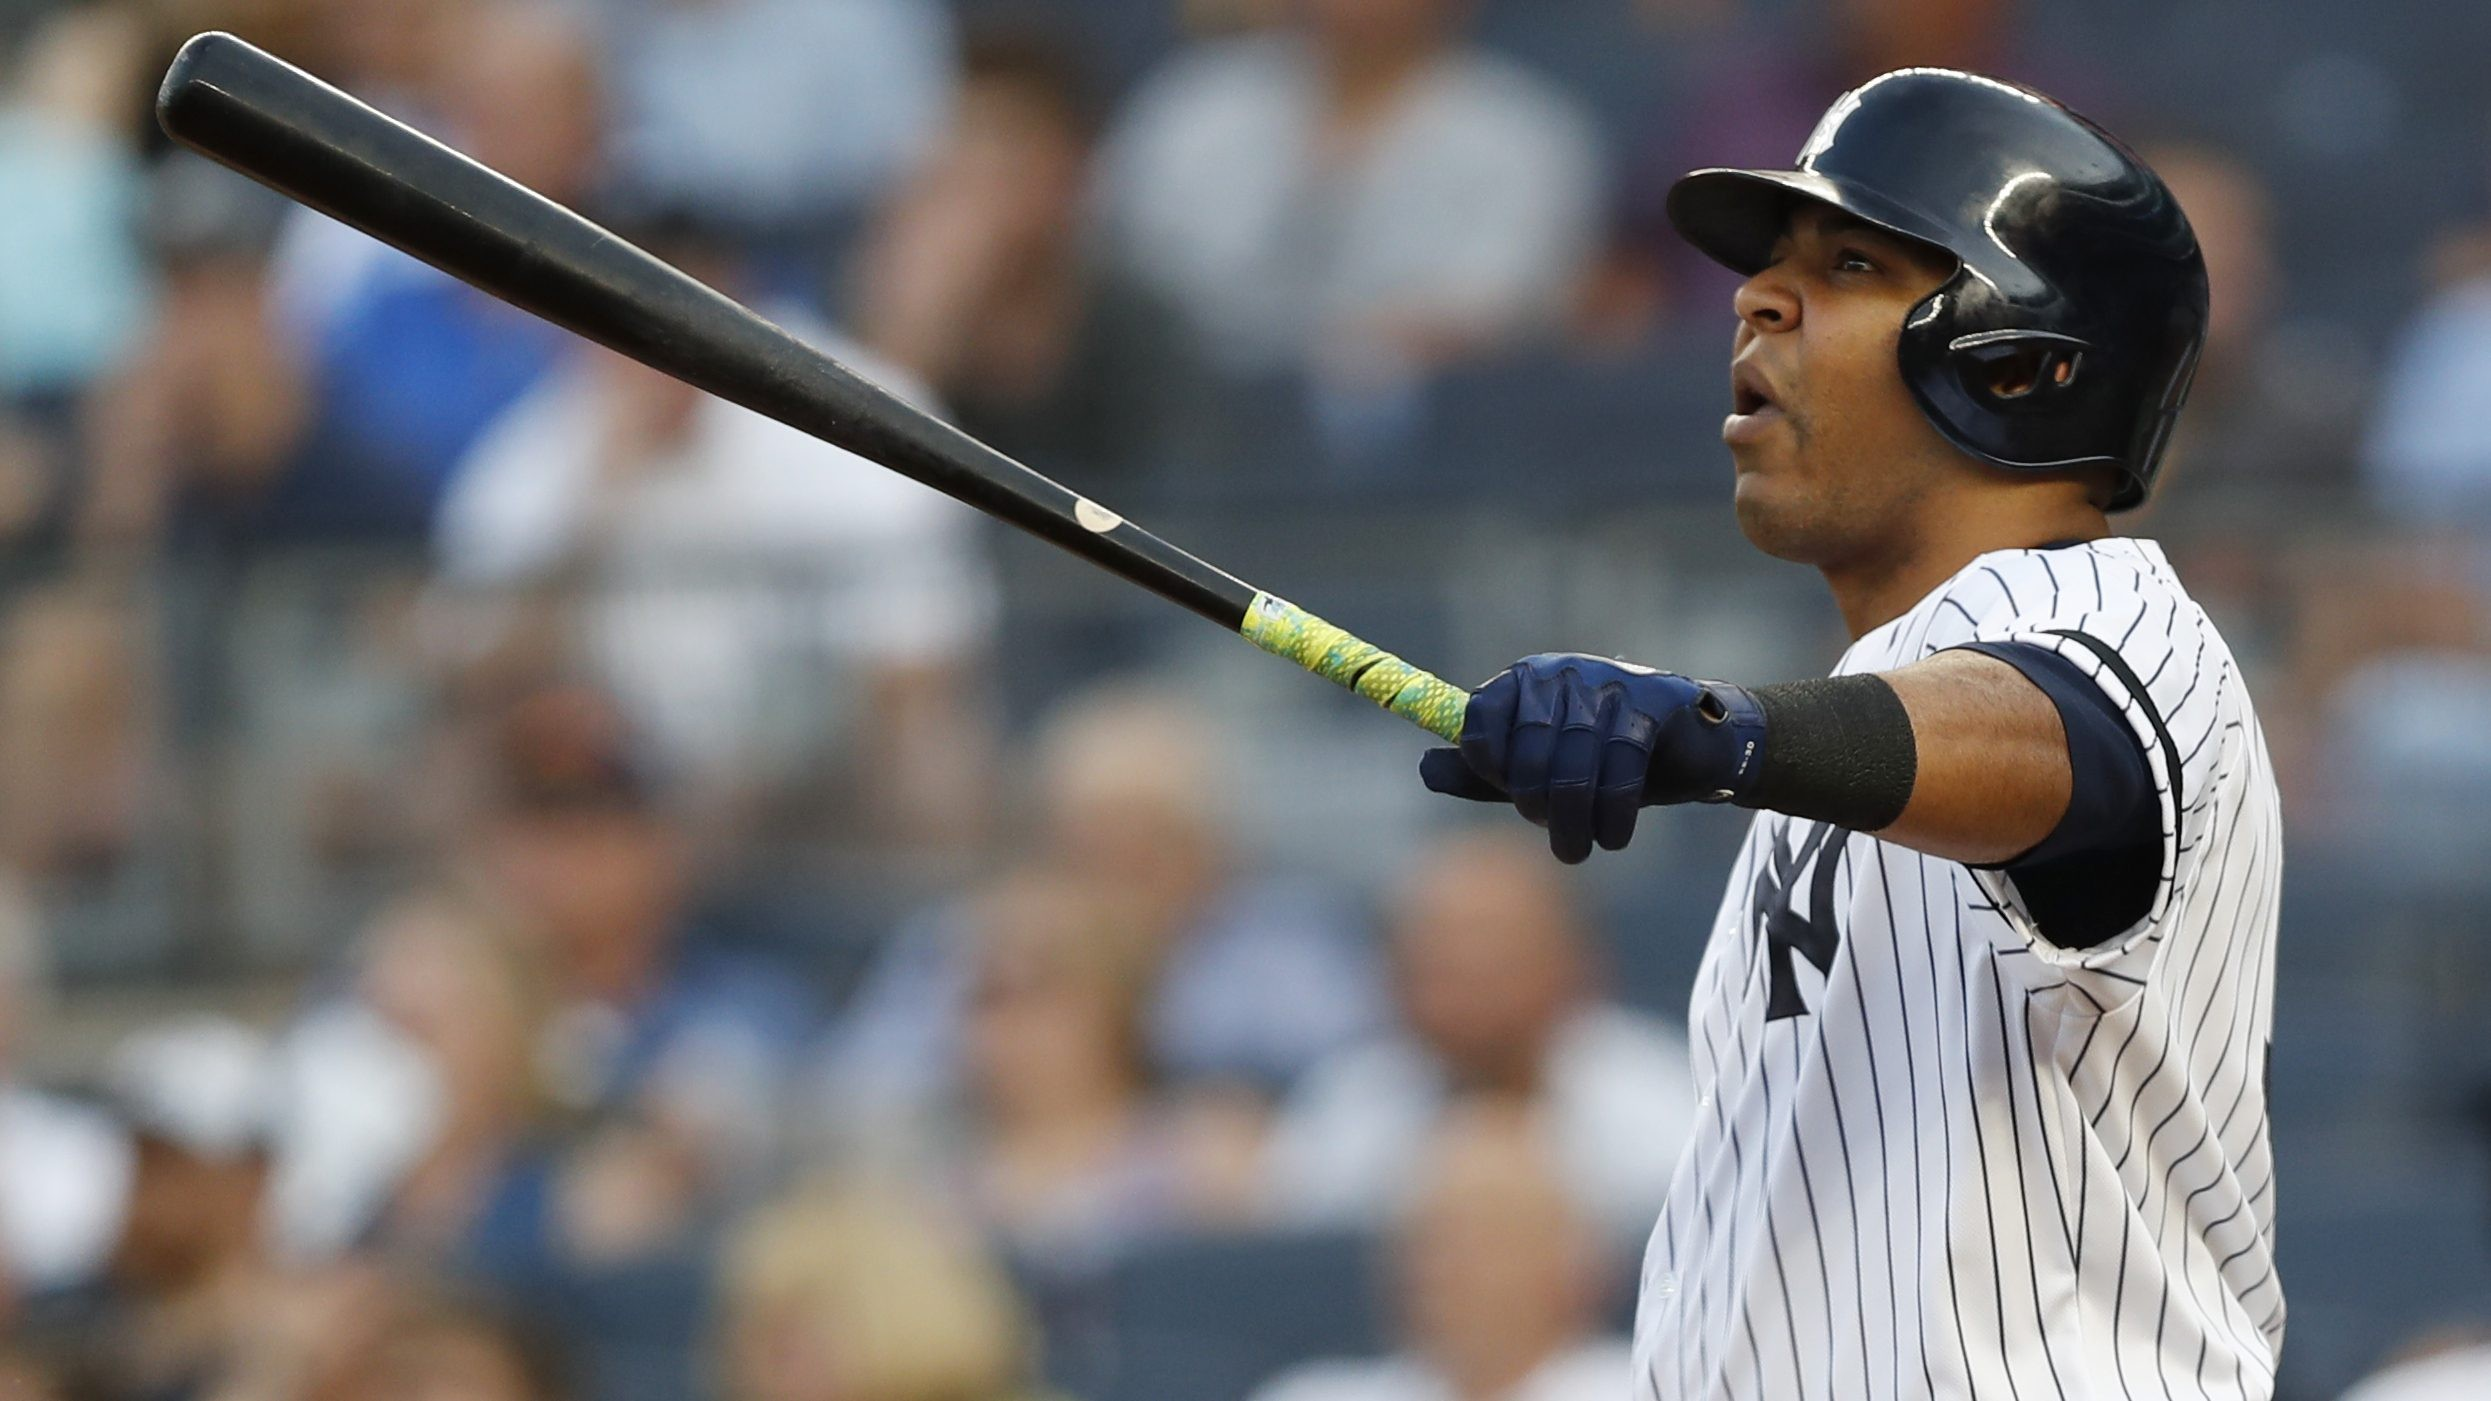 New York Yankees: Edwin Encarnacion hits 408th HR, passes Duke